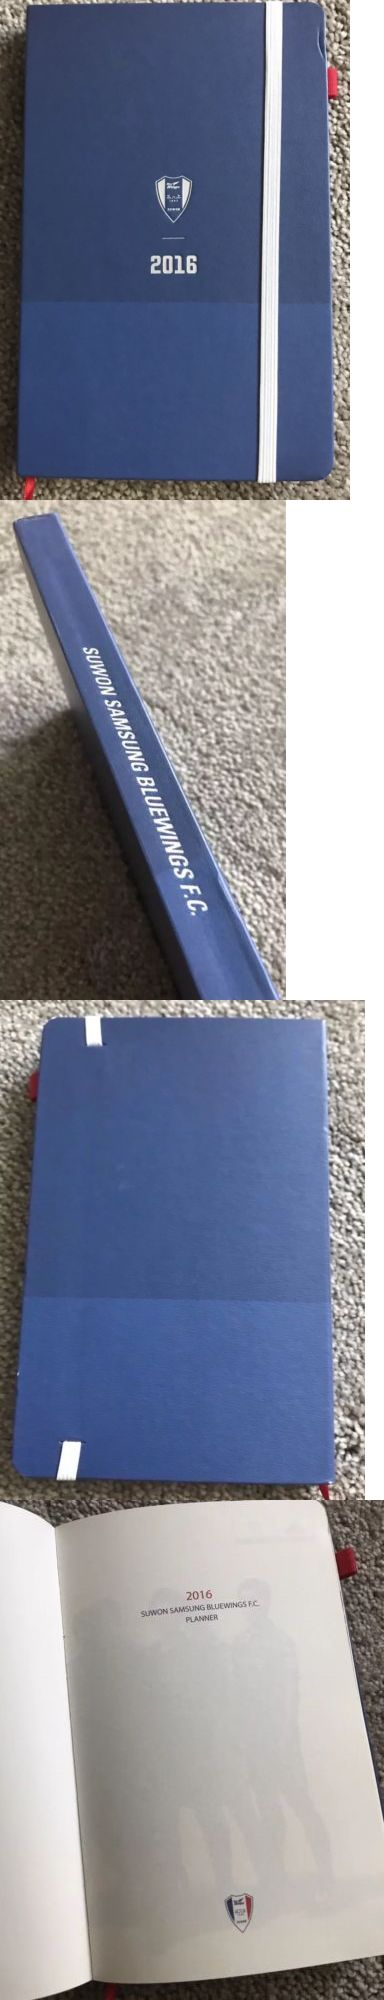 Other Soccer Clothing and Accs 159179: Suwon Samsung Bluewings Planner Diary 2016 Authentic Rare Limited Edition -> BUY IT NOW ONLY: $50 on eBay!